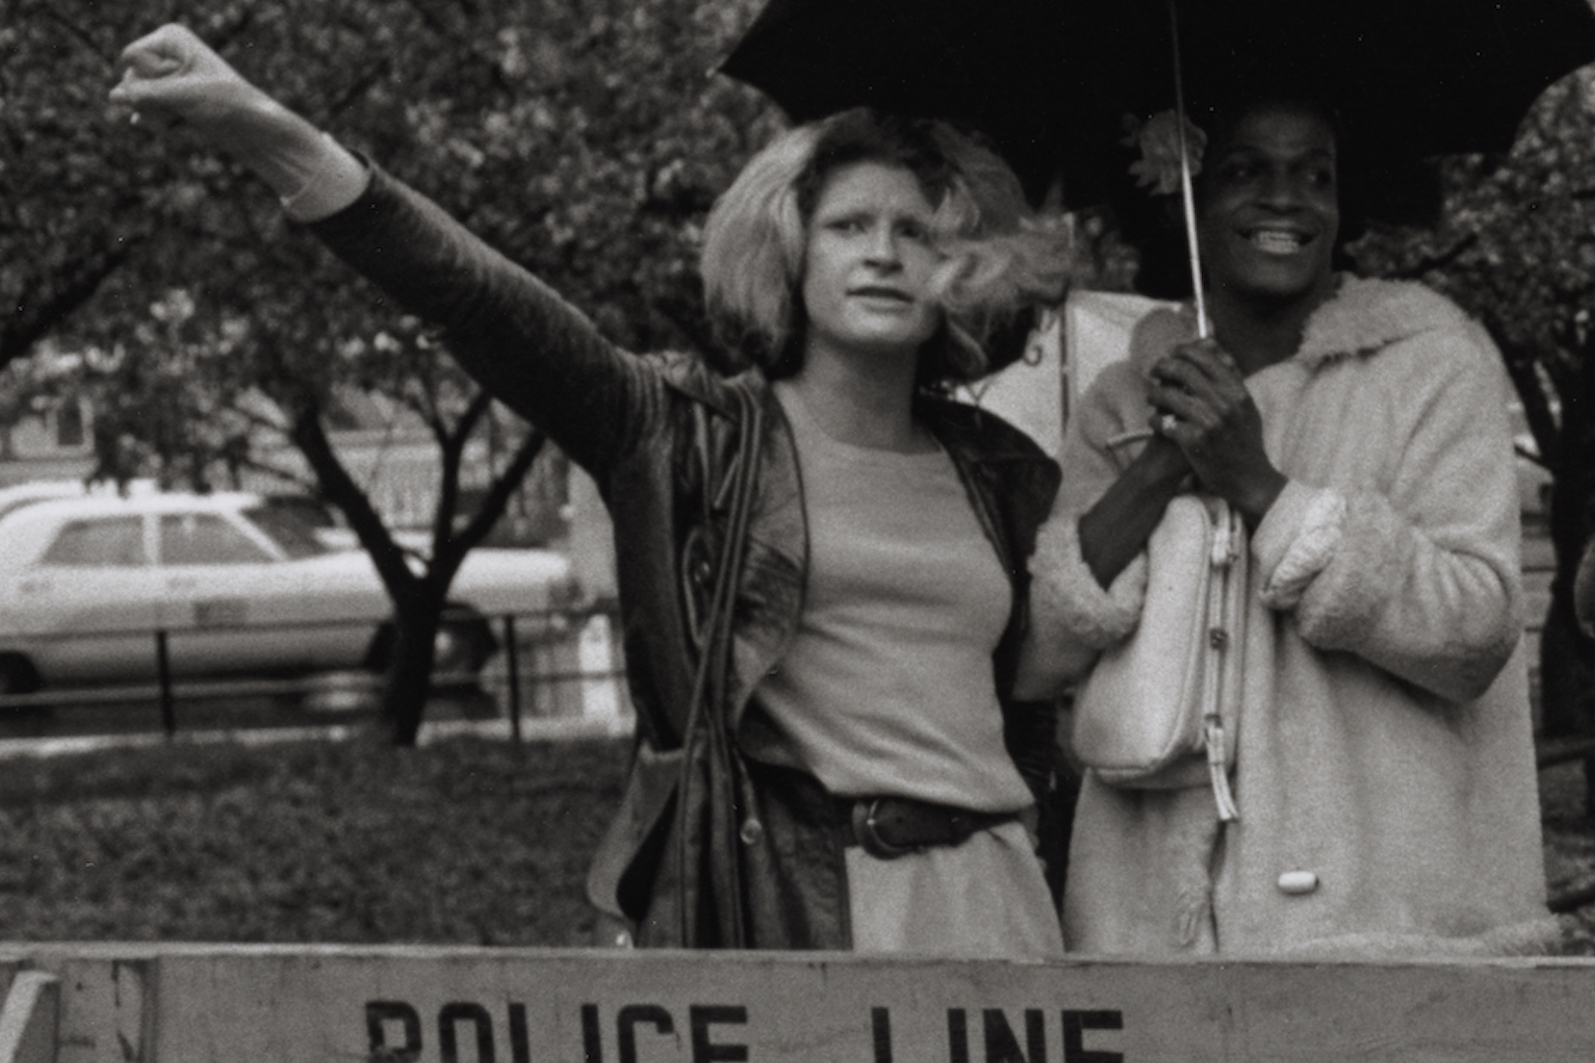 The transgender women at Stonewall were pushed out of the gay rights movement. Now they are getting a statue in New York.